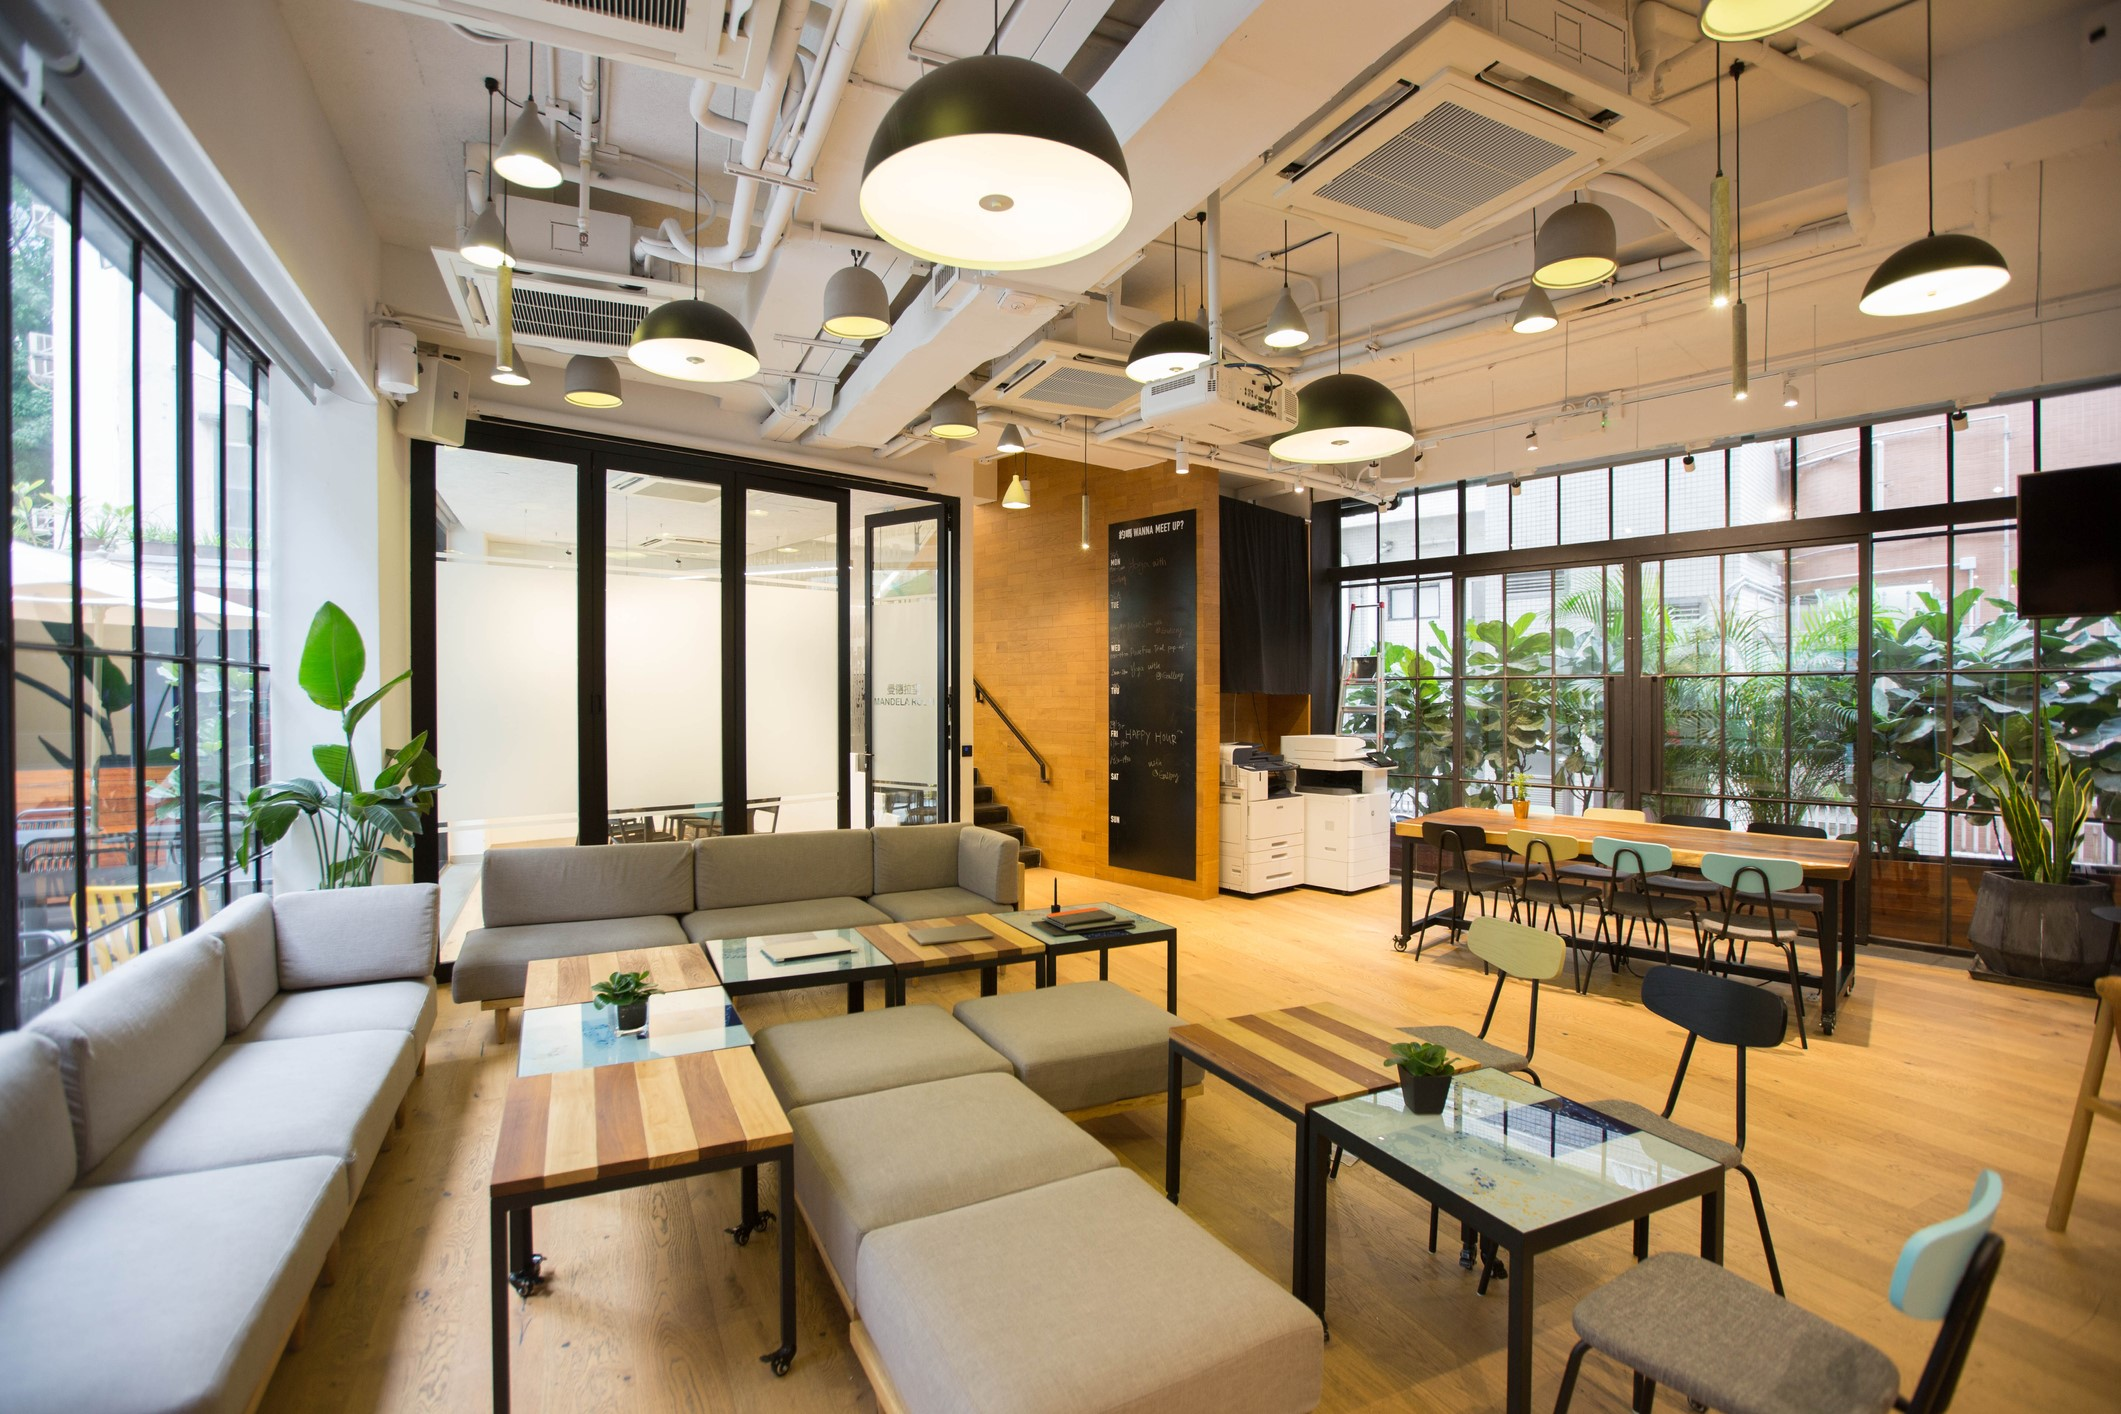 Well-designed coworking area with no people